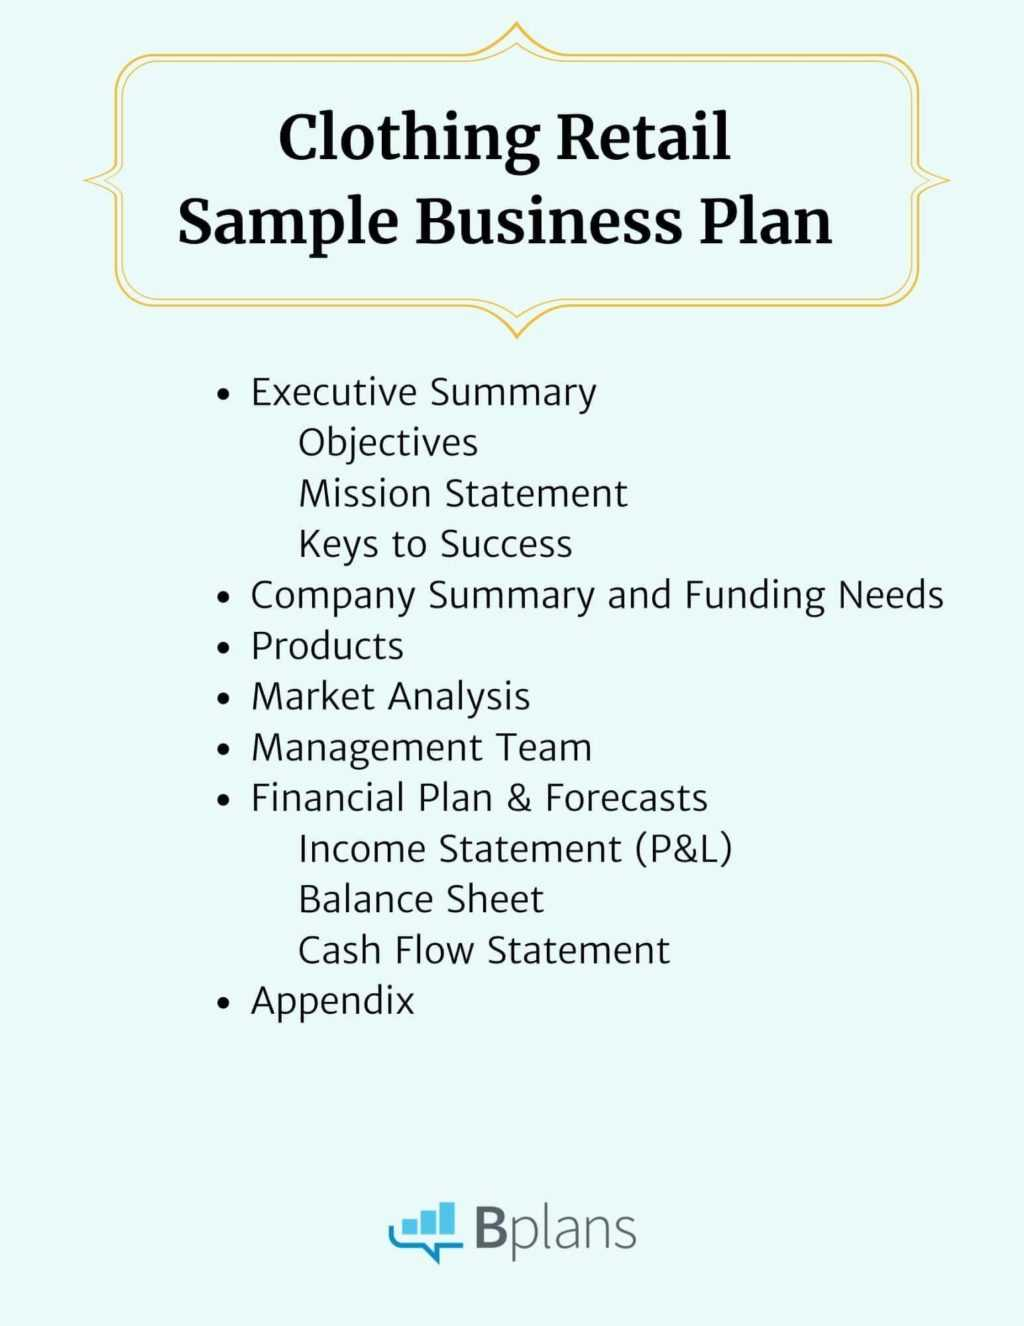 Free Clothing Retail Sample Business Plan For Clothing Store Business Plan Template Free